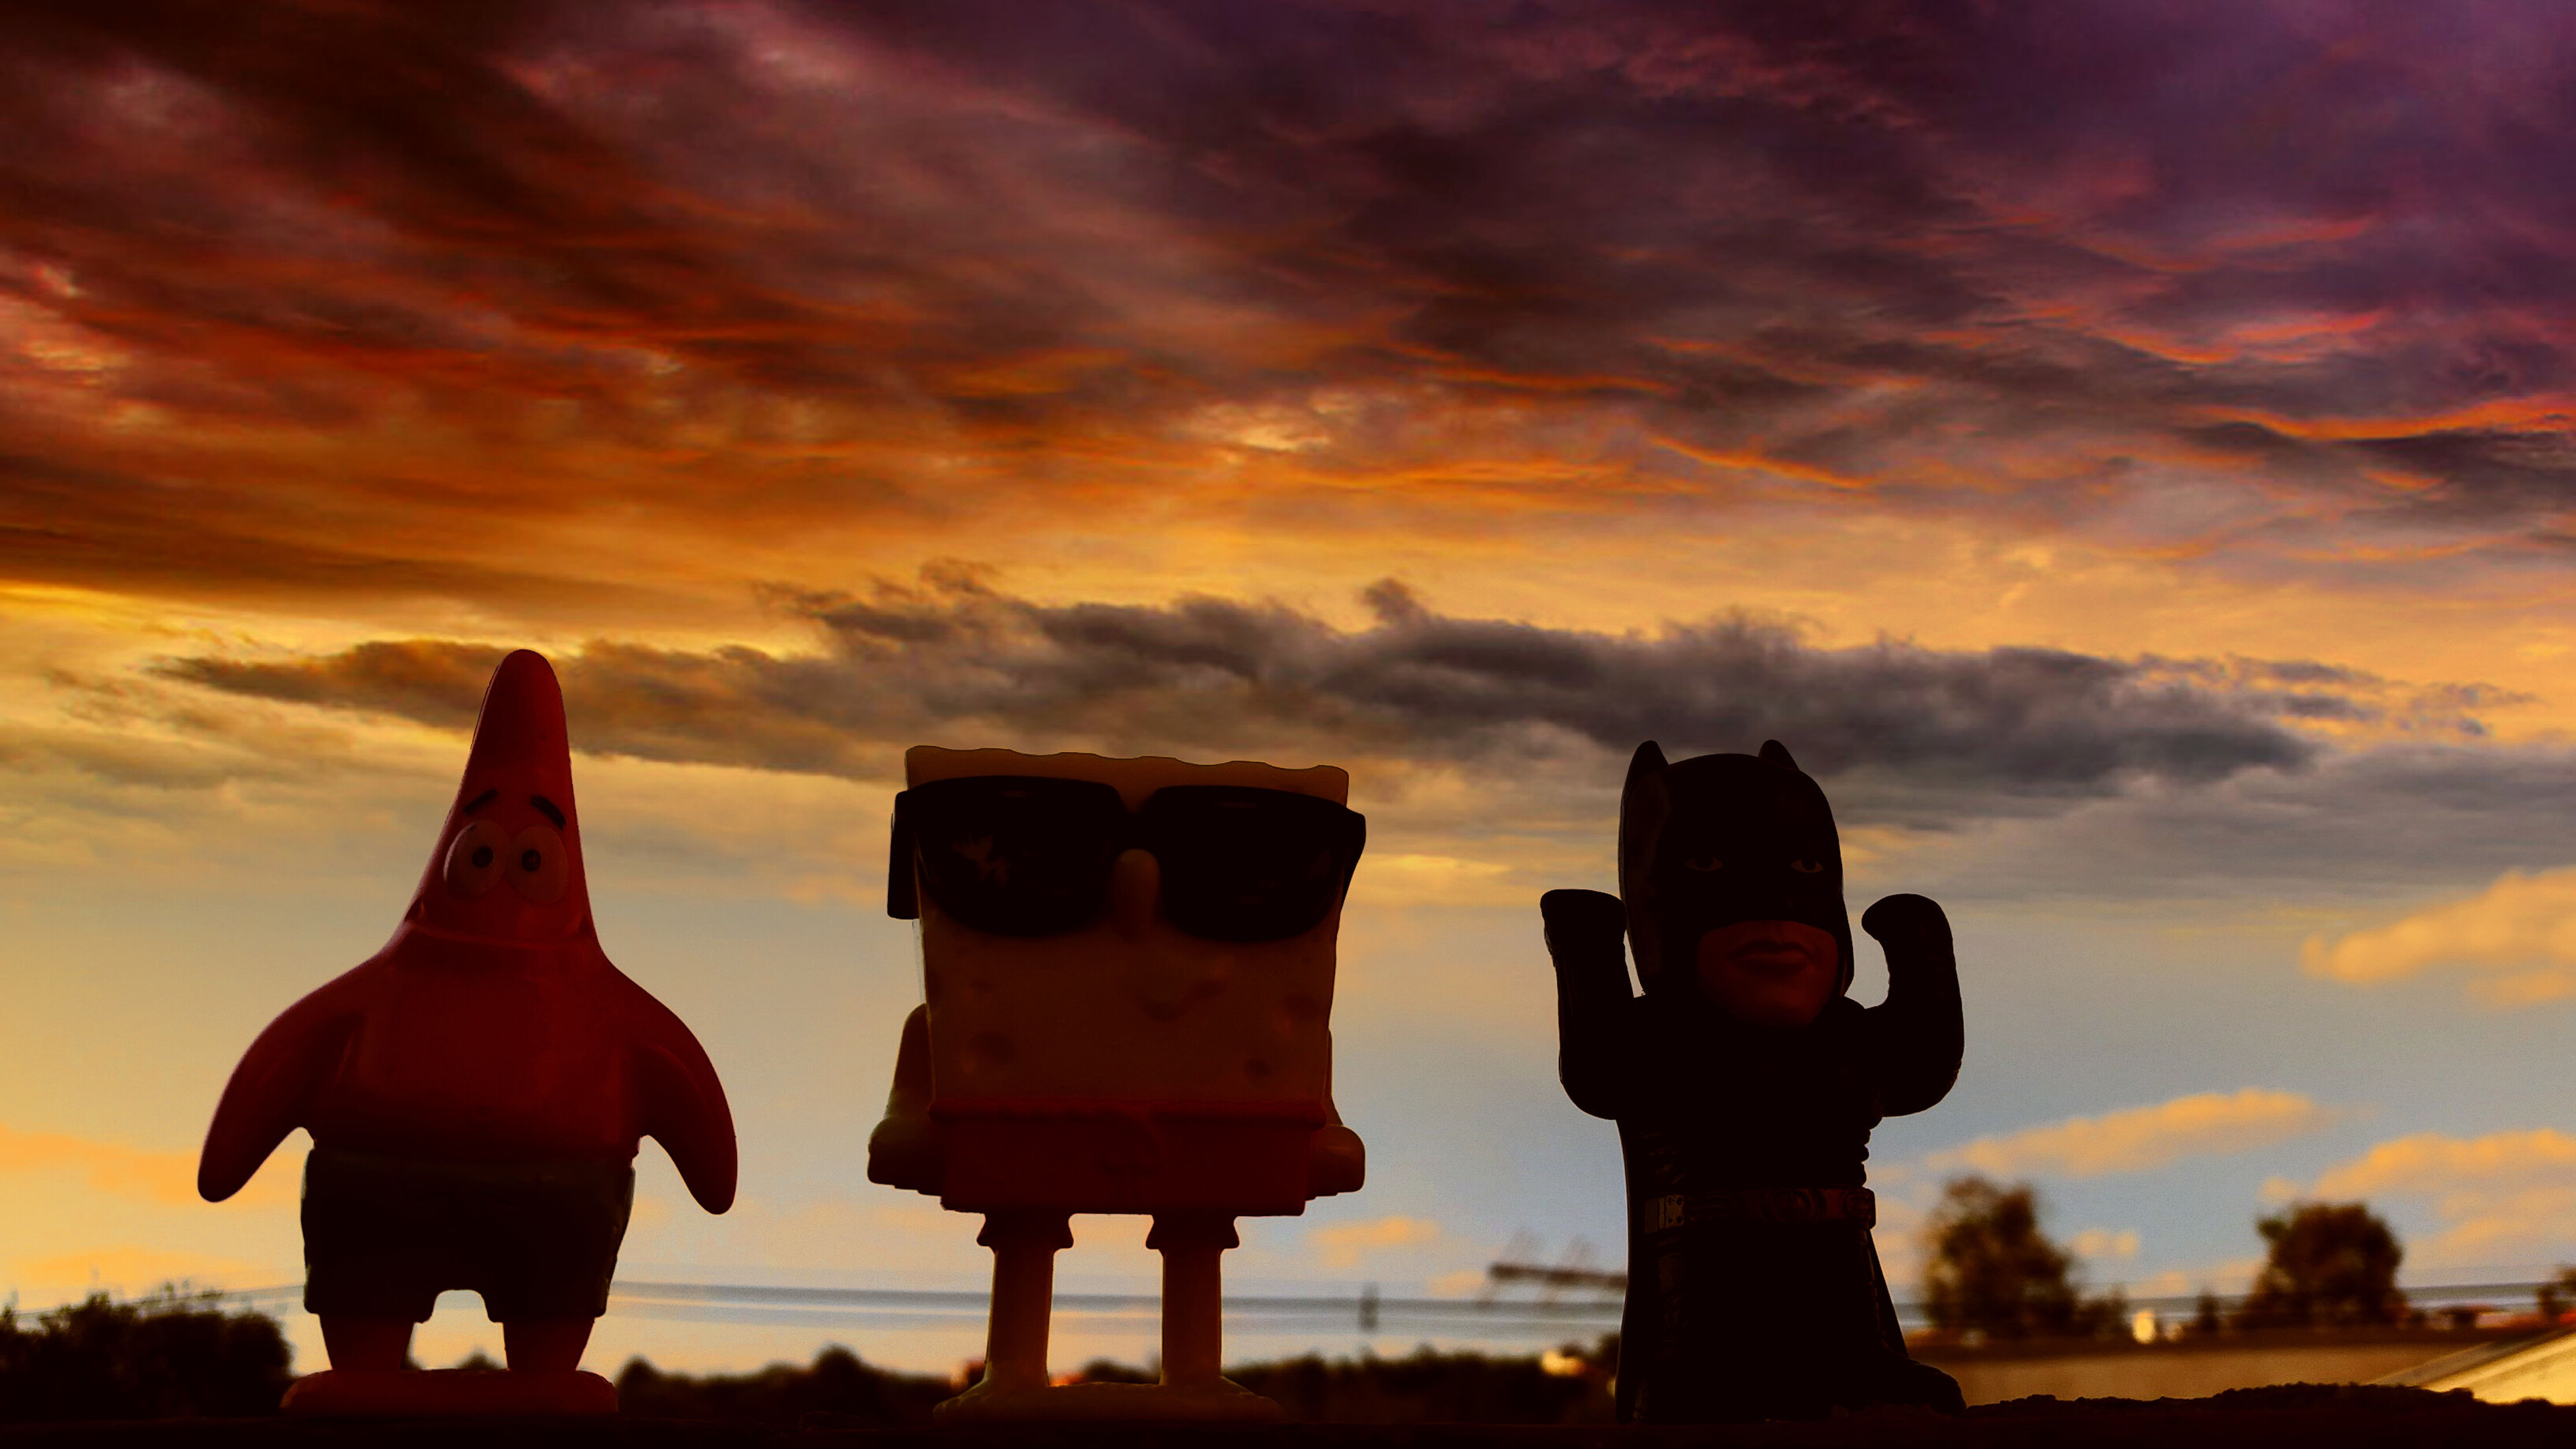 sky, sunset, cloud - sky, silhouette, orange color, cloudy, cloud, standing, lifestyles, men, scenics, beauty in nature, leisure activity, tranquility, dramatic sky, rear view, weather, dusk